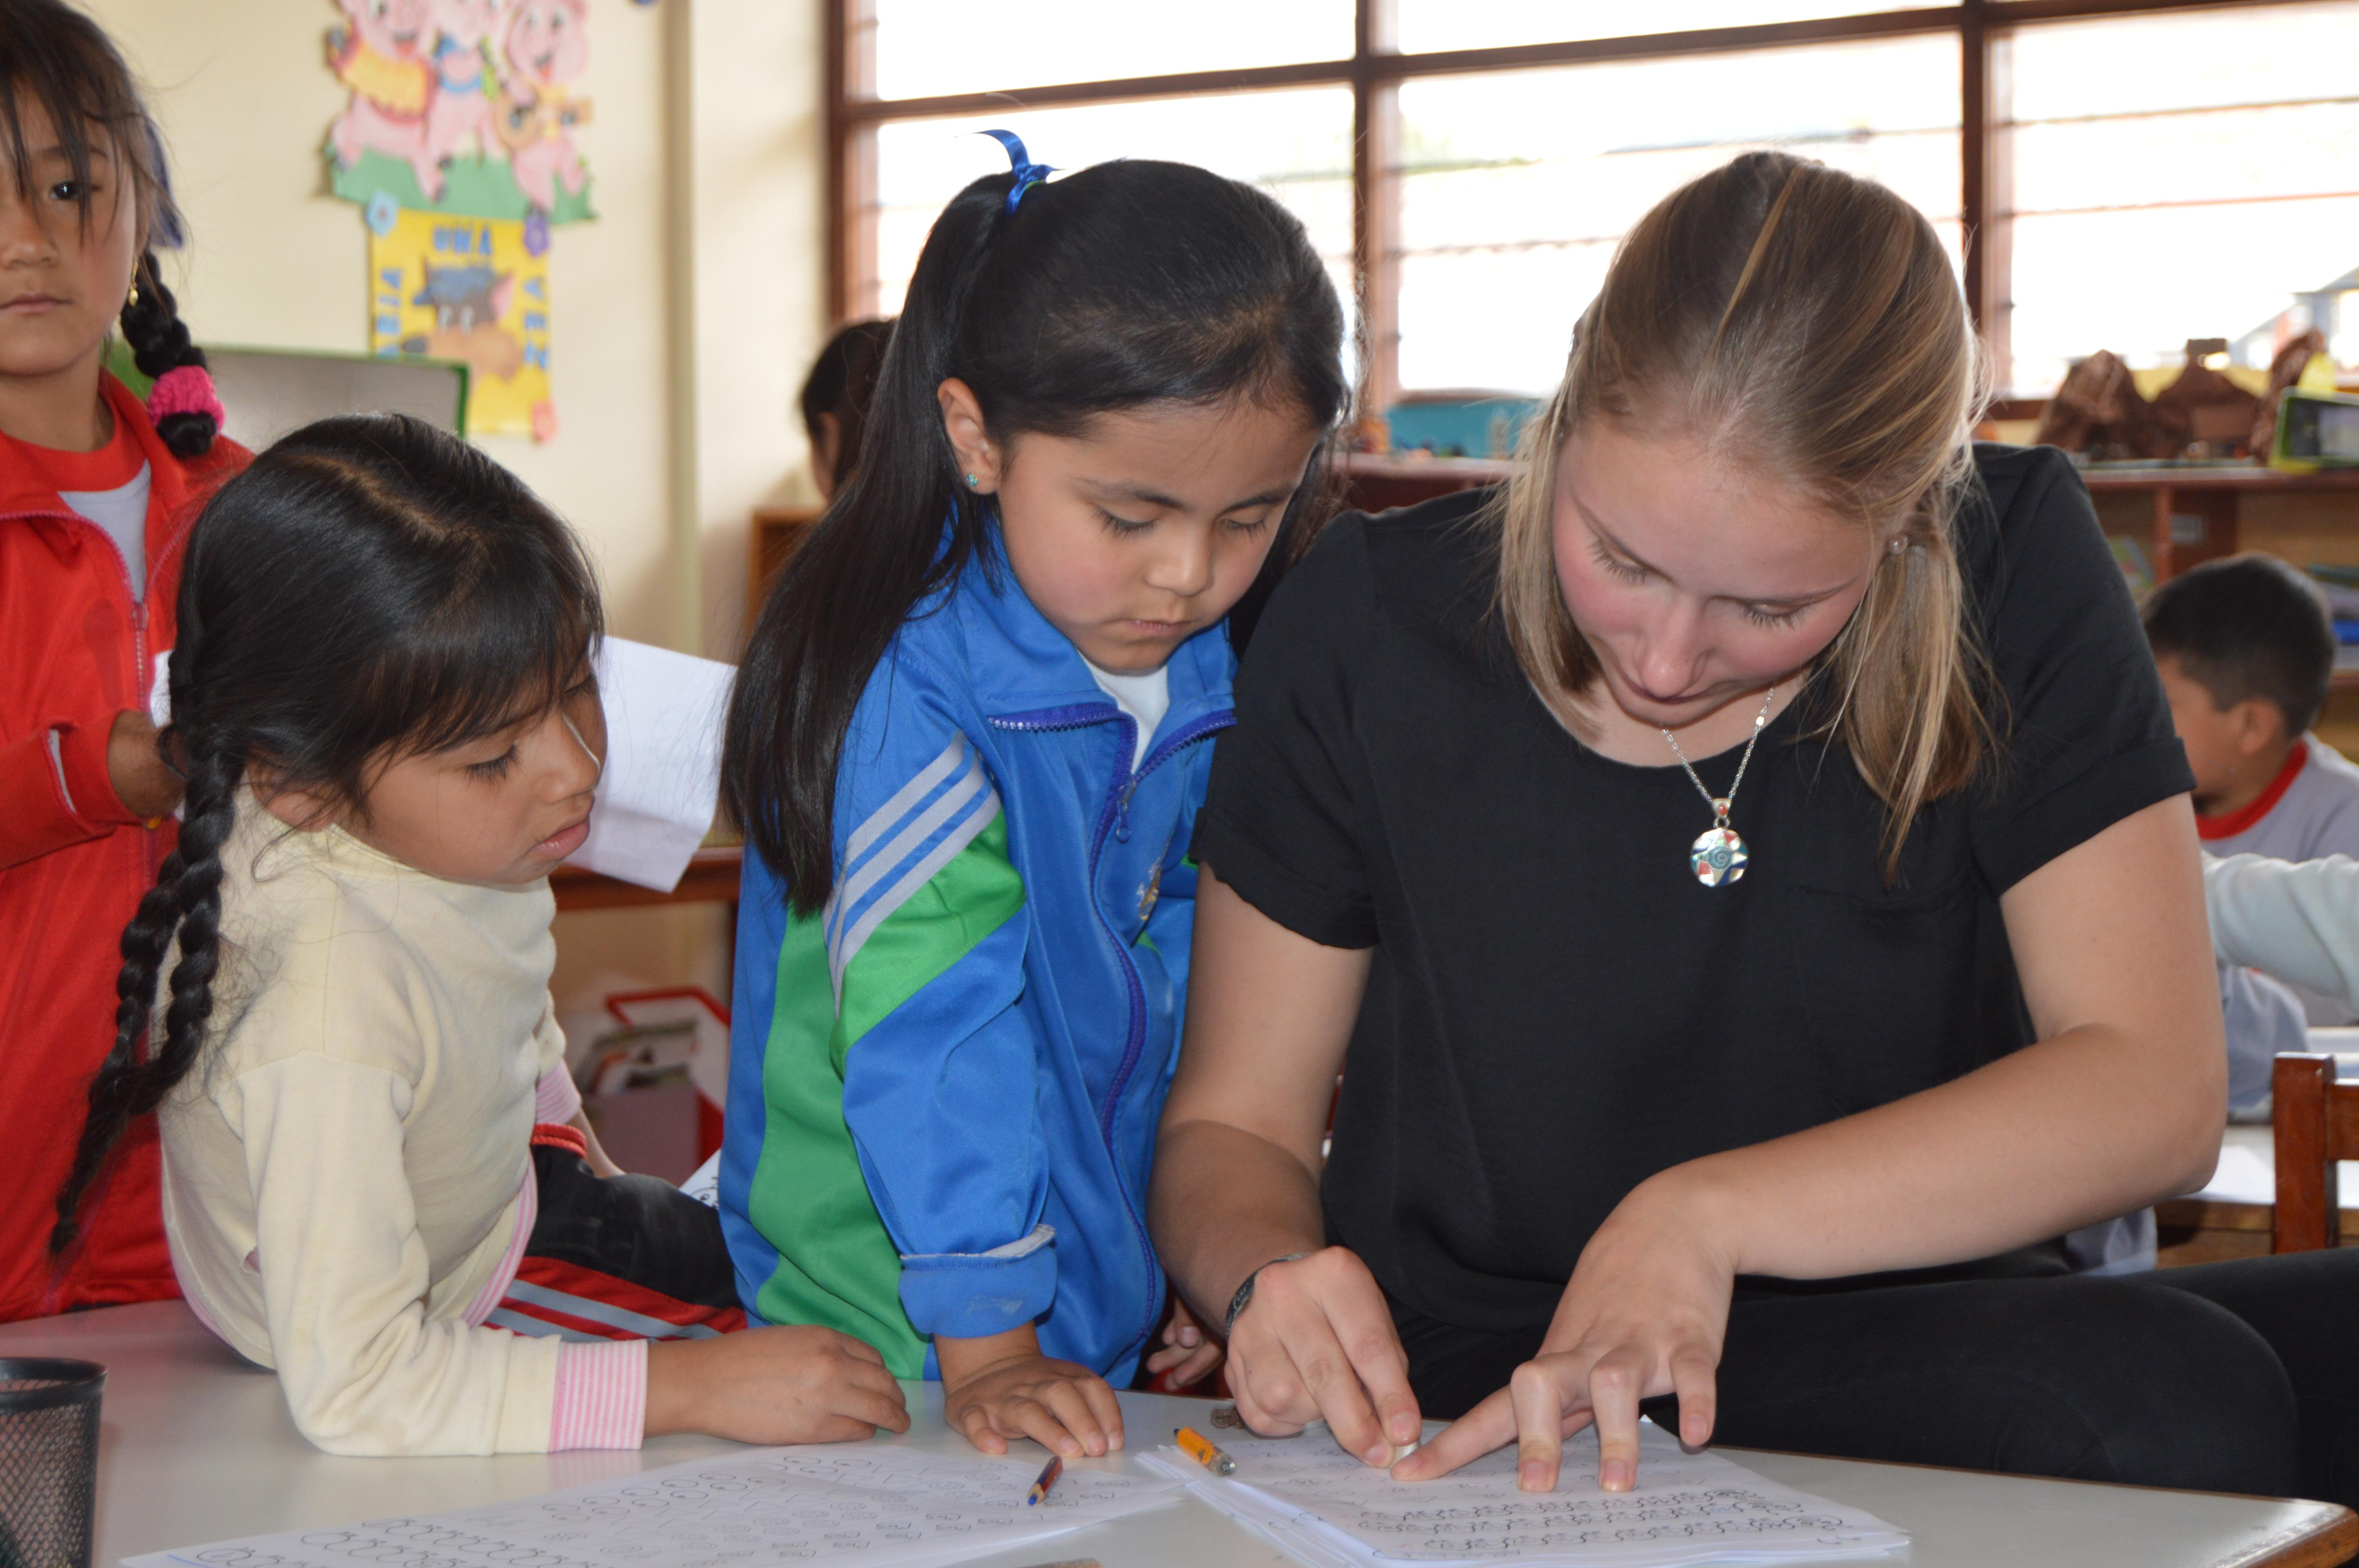 Teaching volunteer in Peru explains to her student where she went wrong in her work and how to correct it